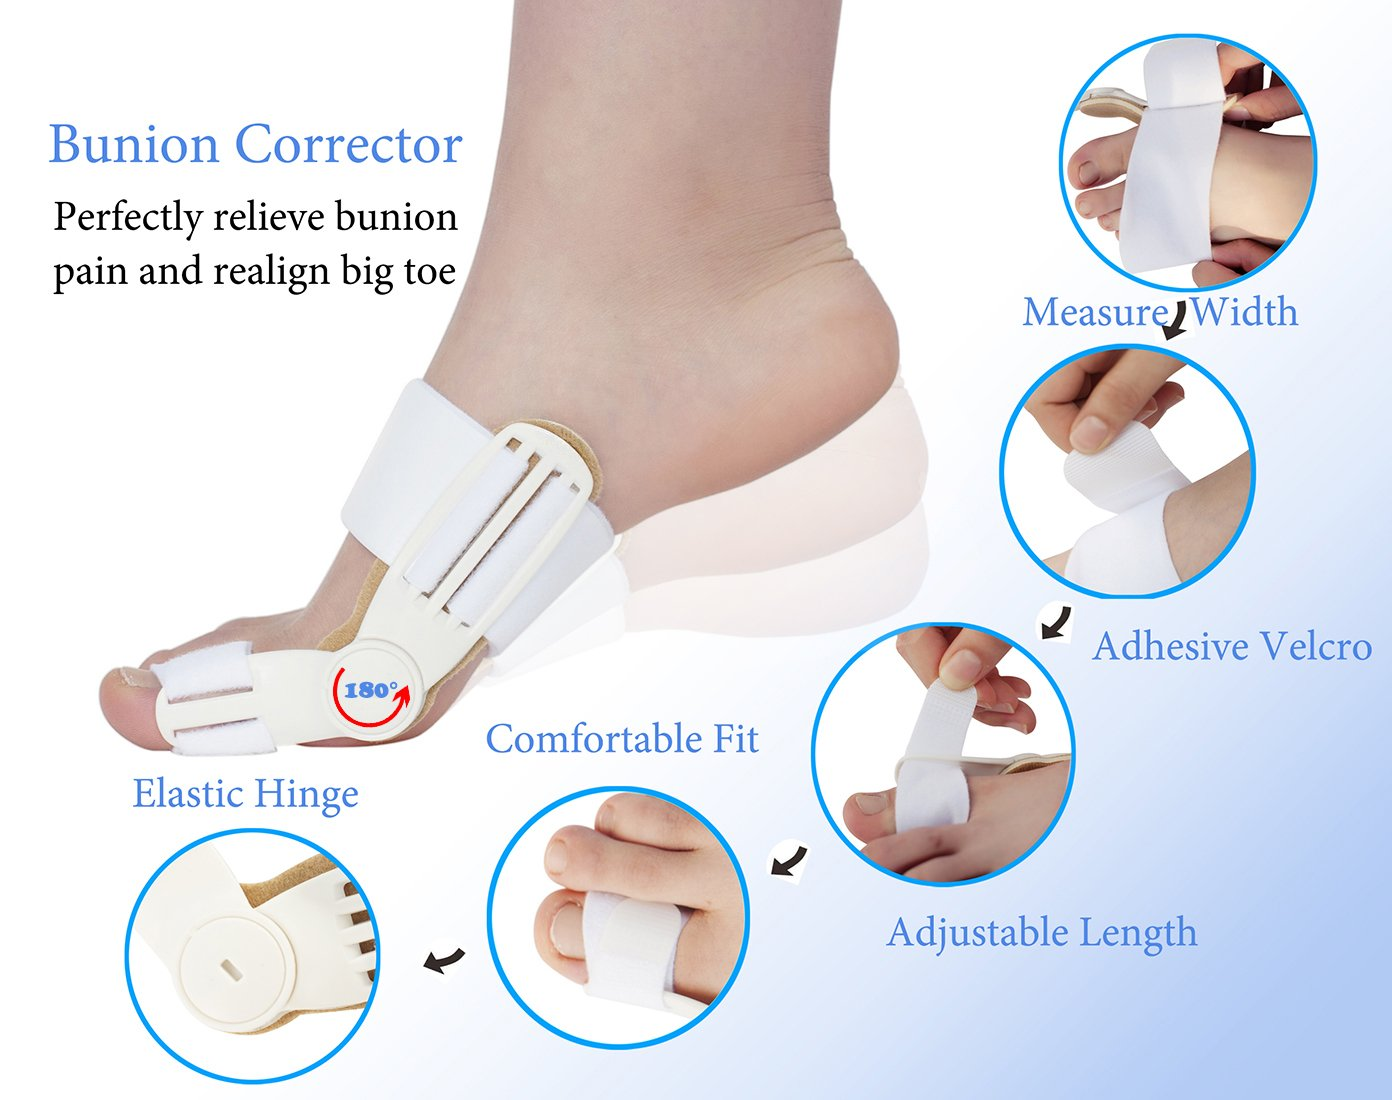 Amazon.com : Bunion Corrector & Small Toe Separator for Bunion Hallux Valgus Pain Relief and Gel Toe Separators, Bunion Toe Straighteners-2 Day Correctors ...